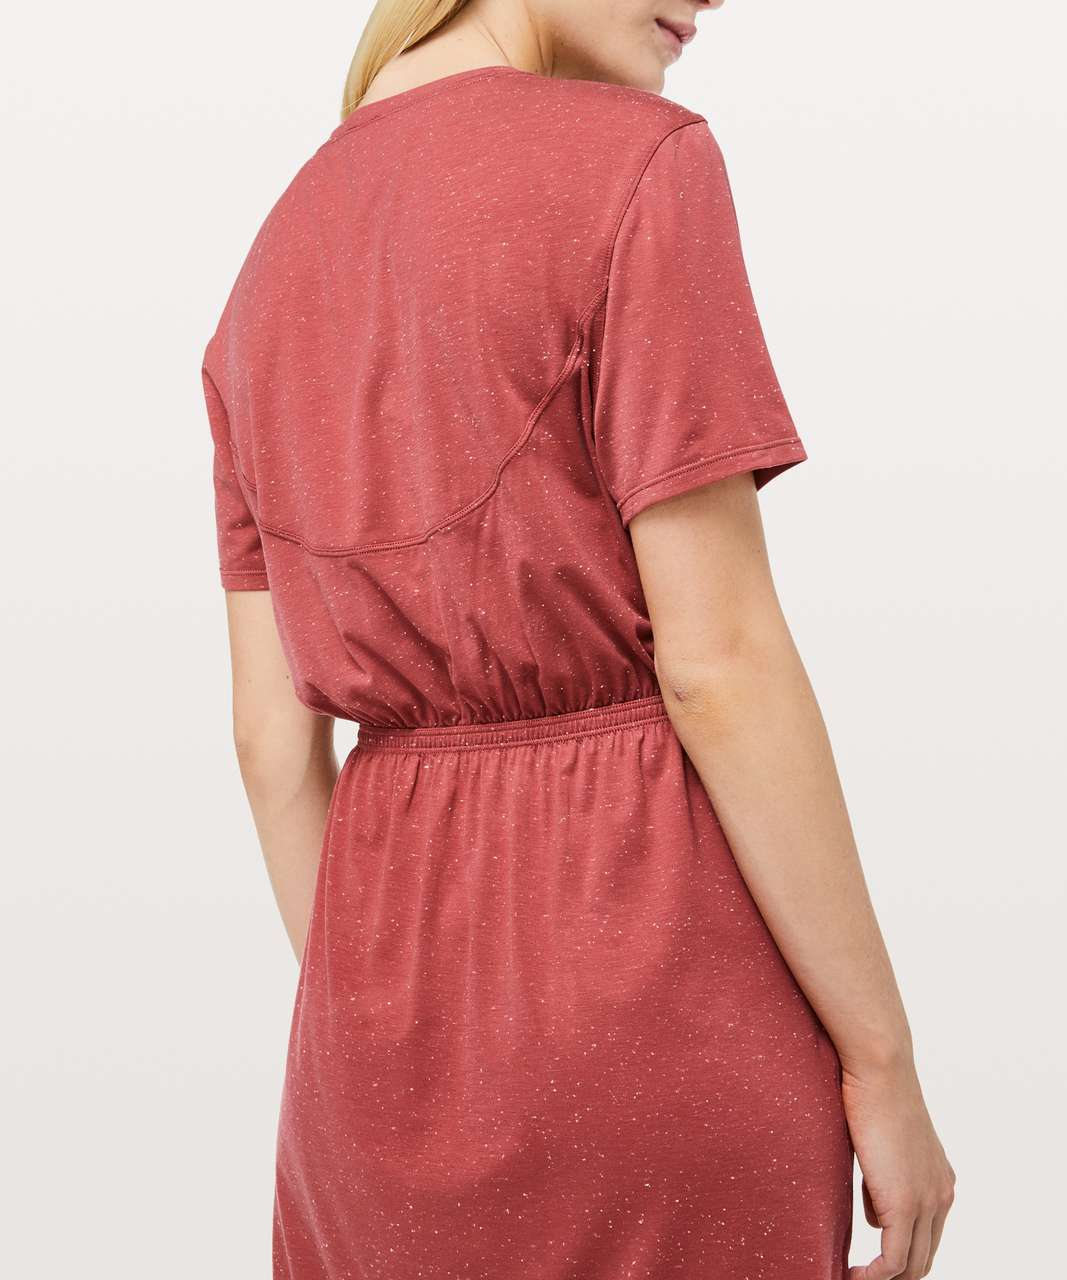 Lululemon Unwind Your Mind Dress - Brick Rose / White